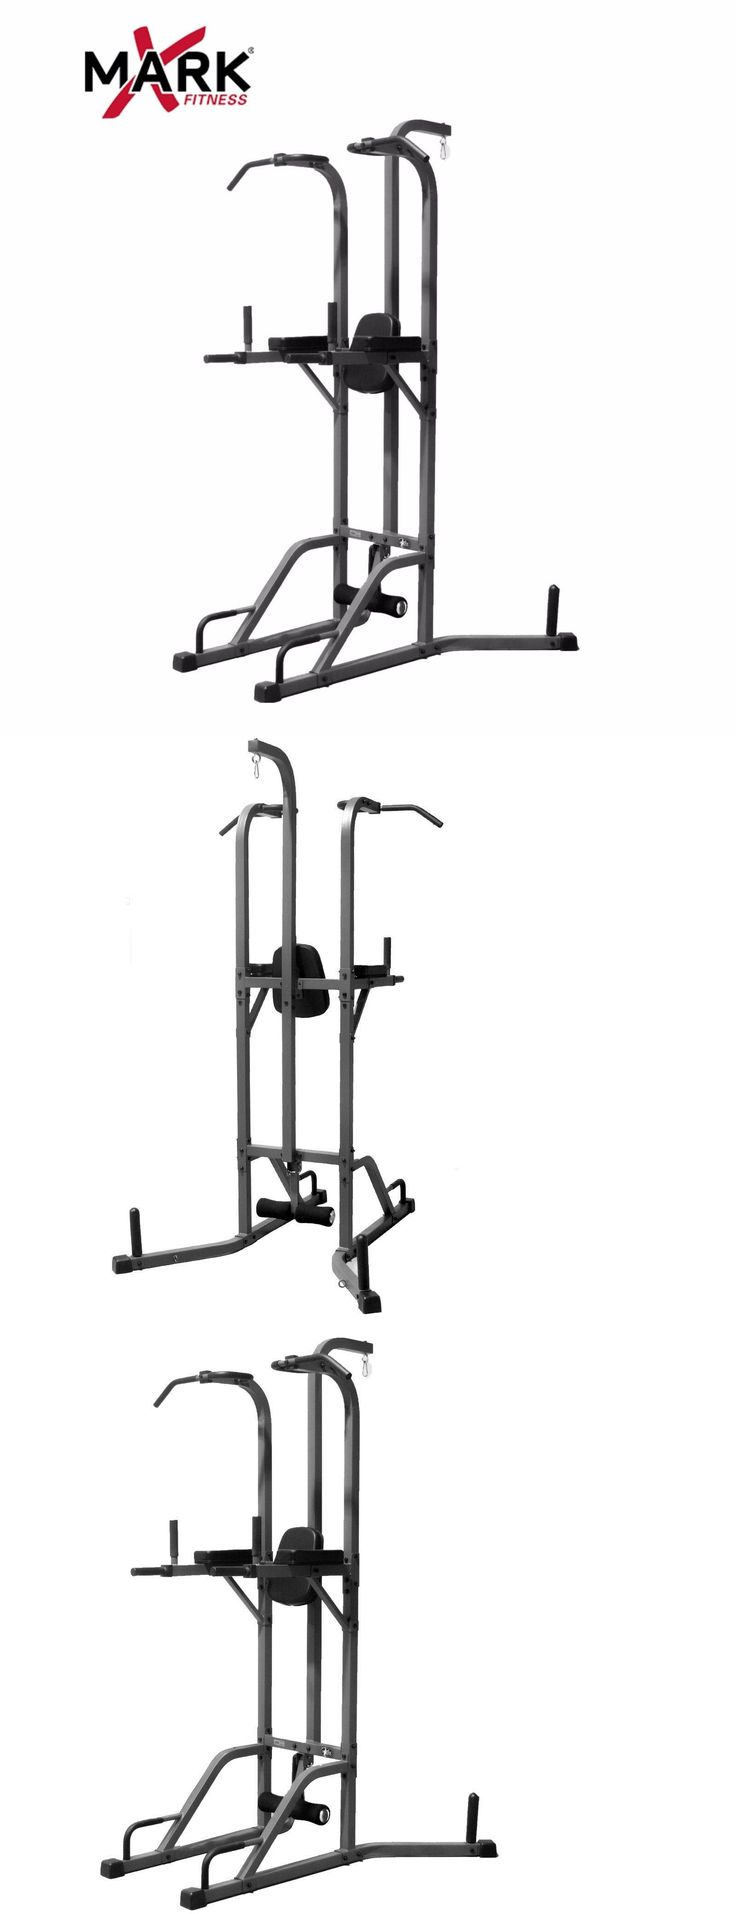 best 25 heavy bag stand ideas only on pinterest boxing. Black Bedroom Furniture Sets. Home Design Ideas